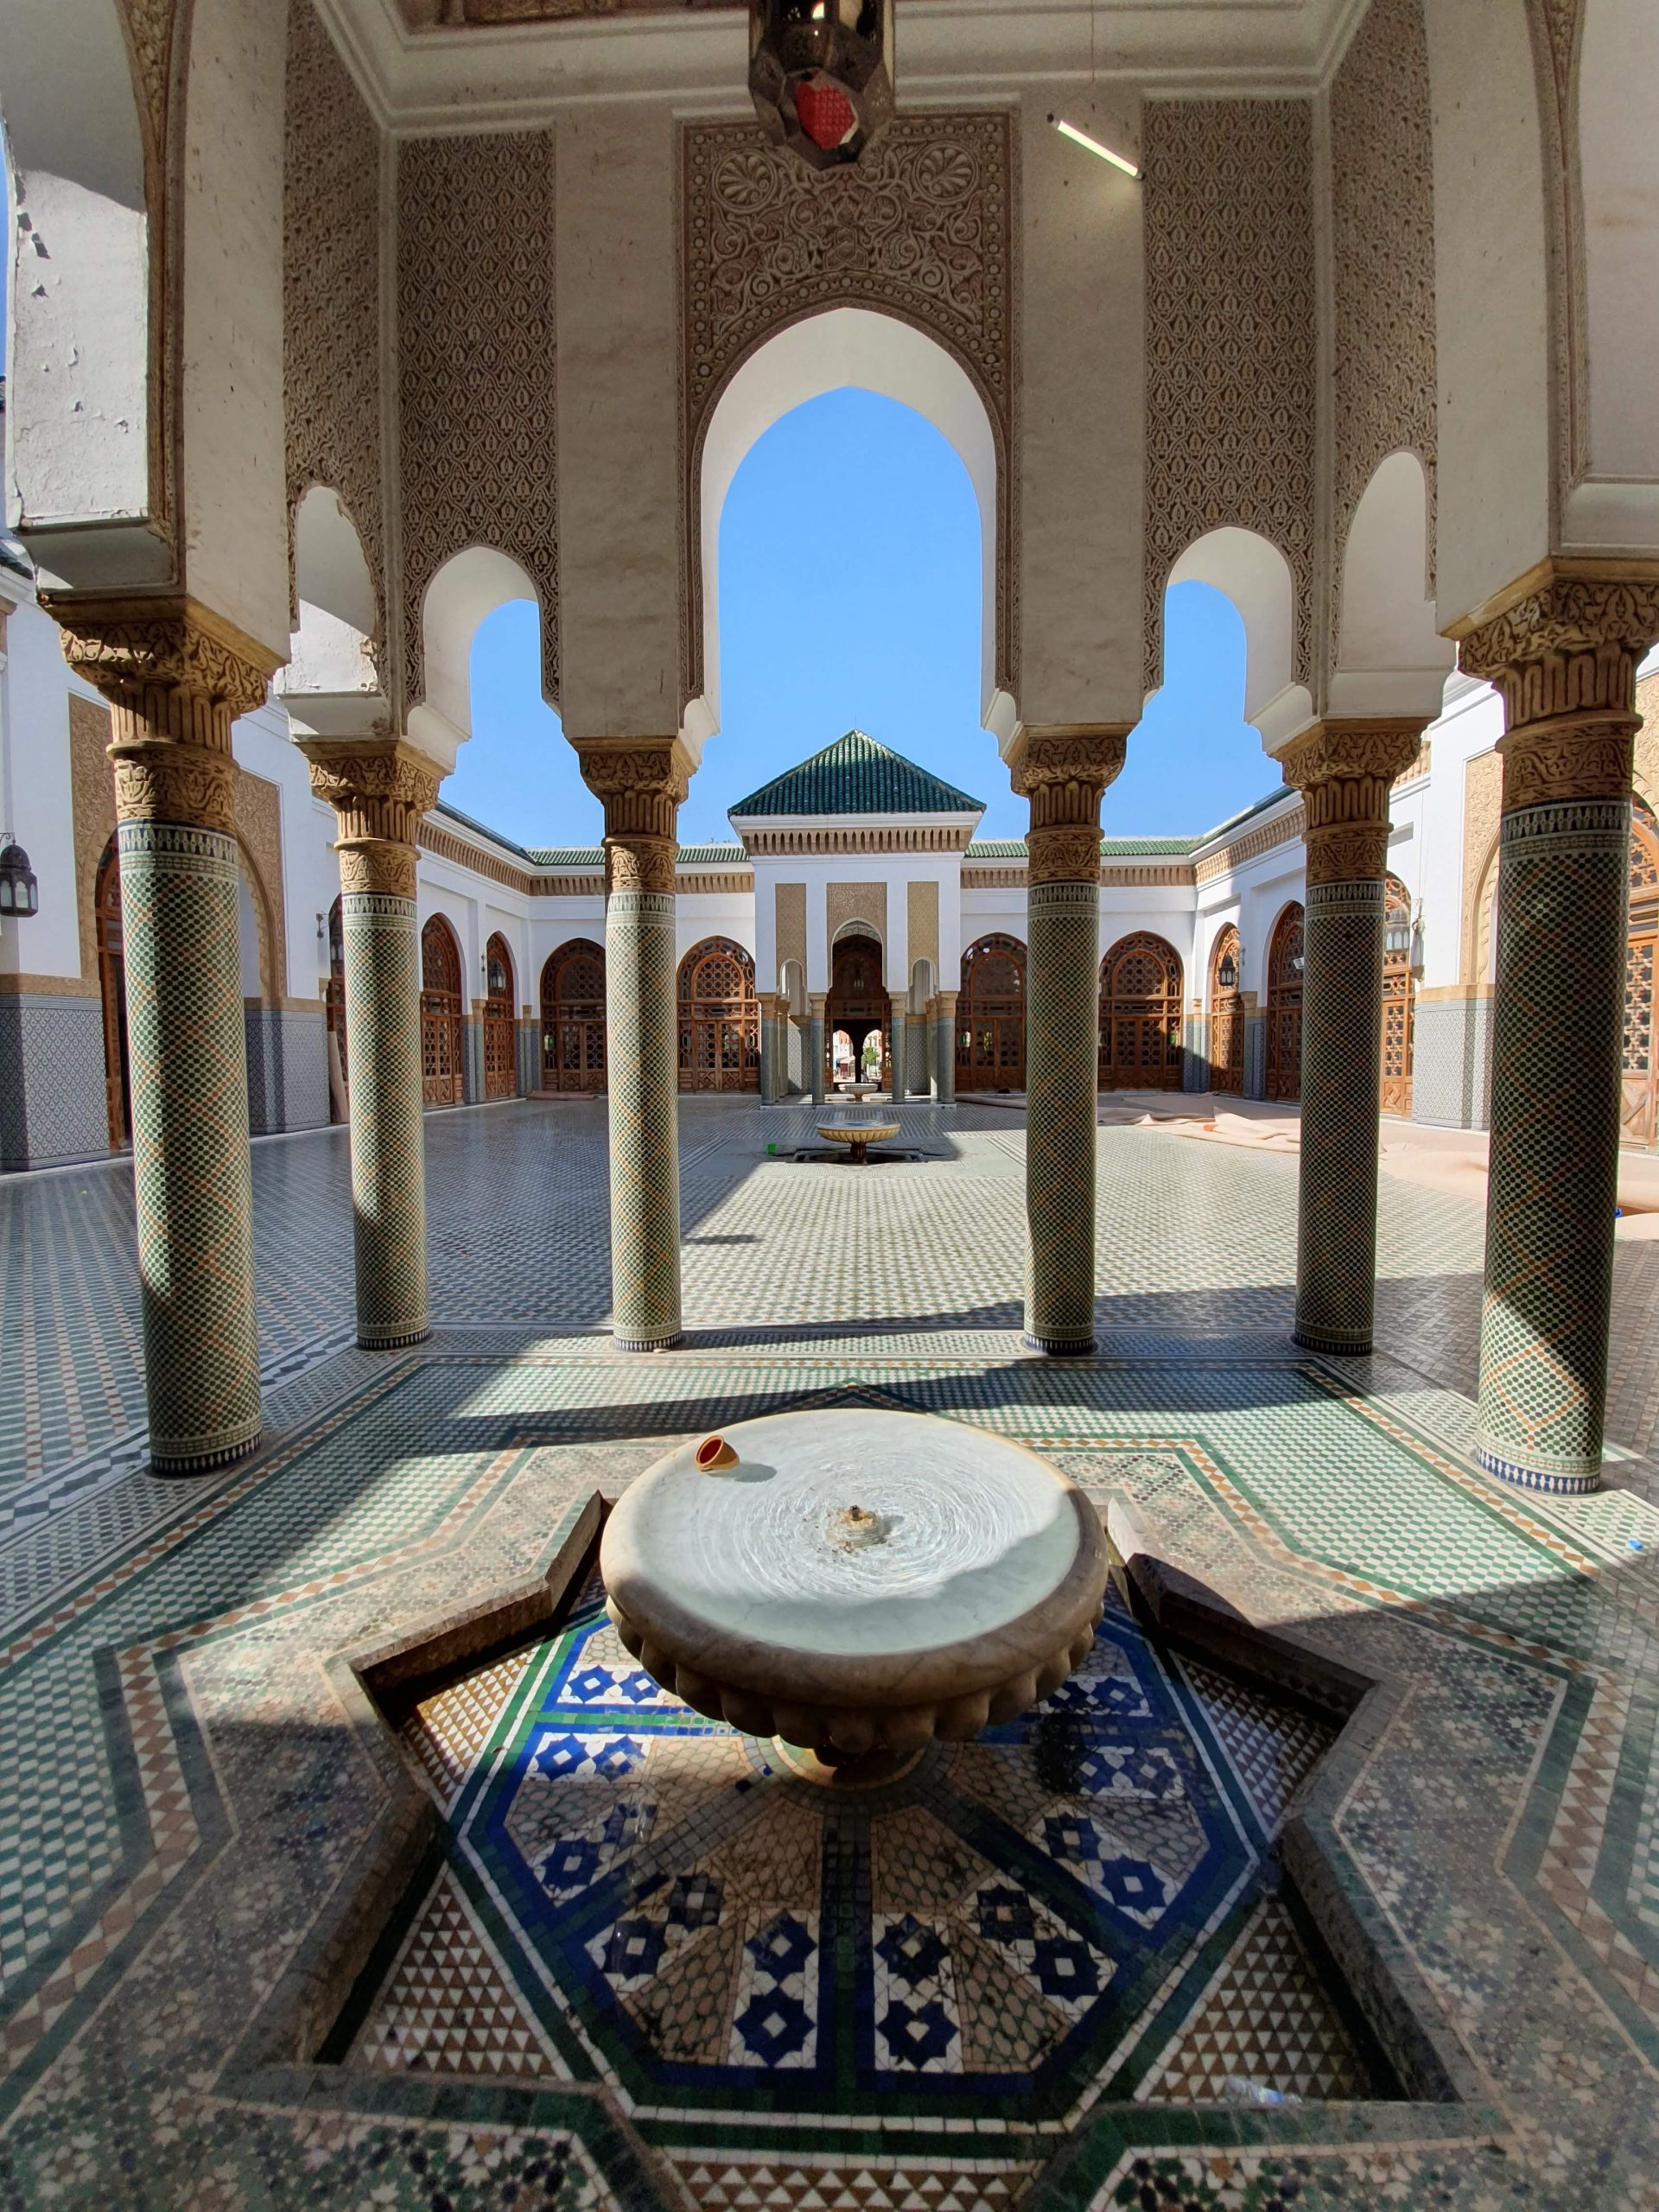 gallery image for Highlights Of Fes